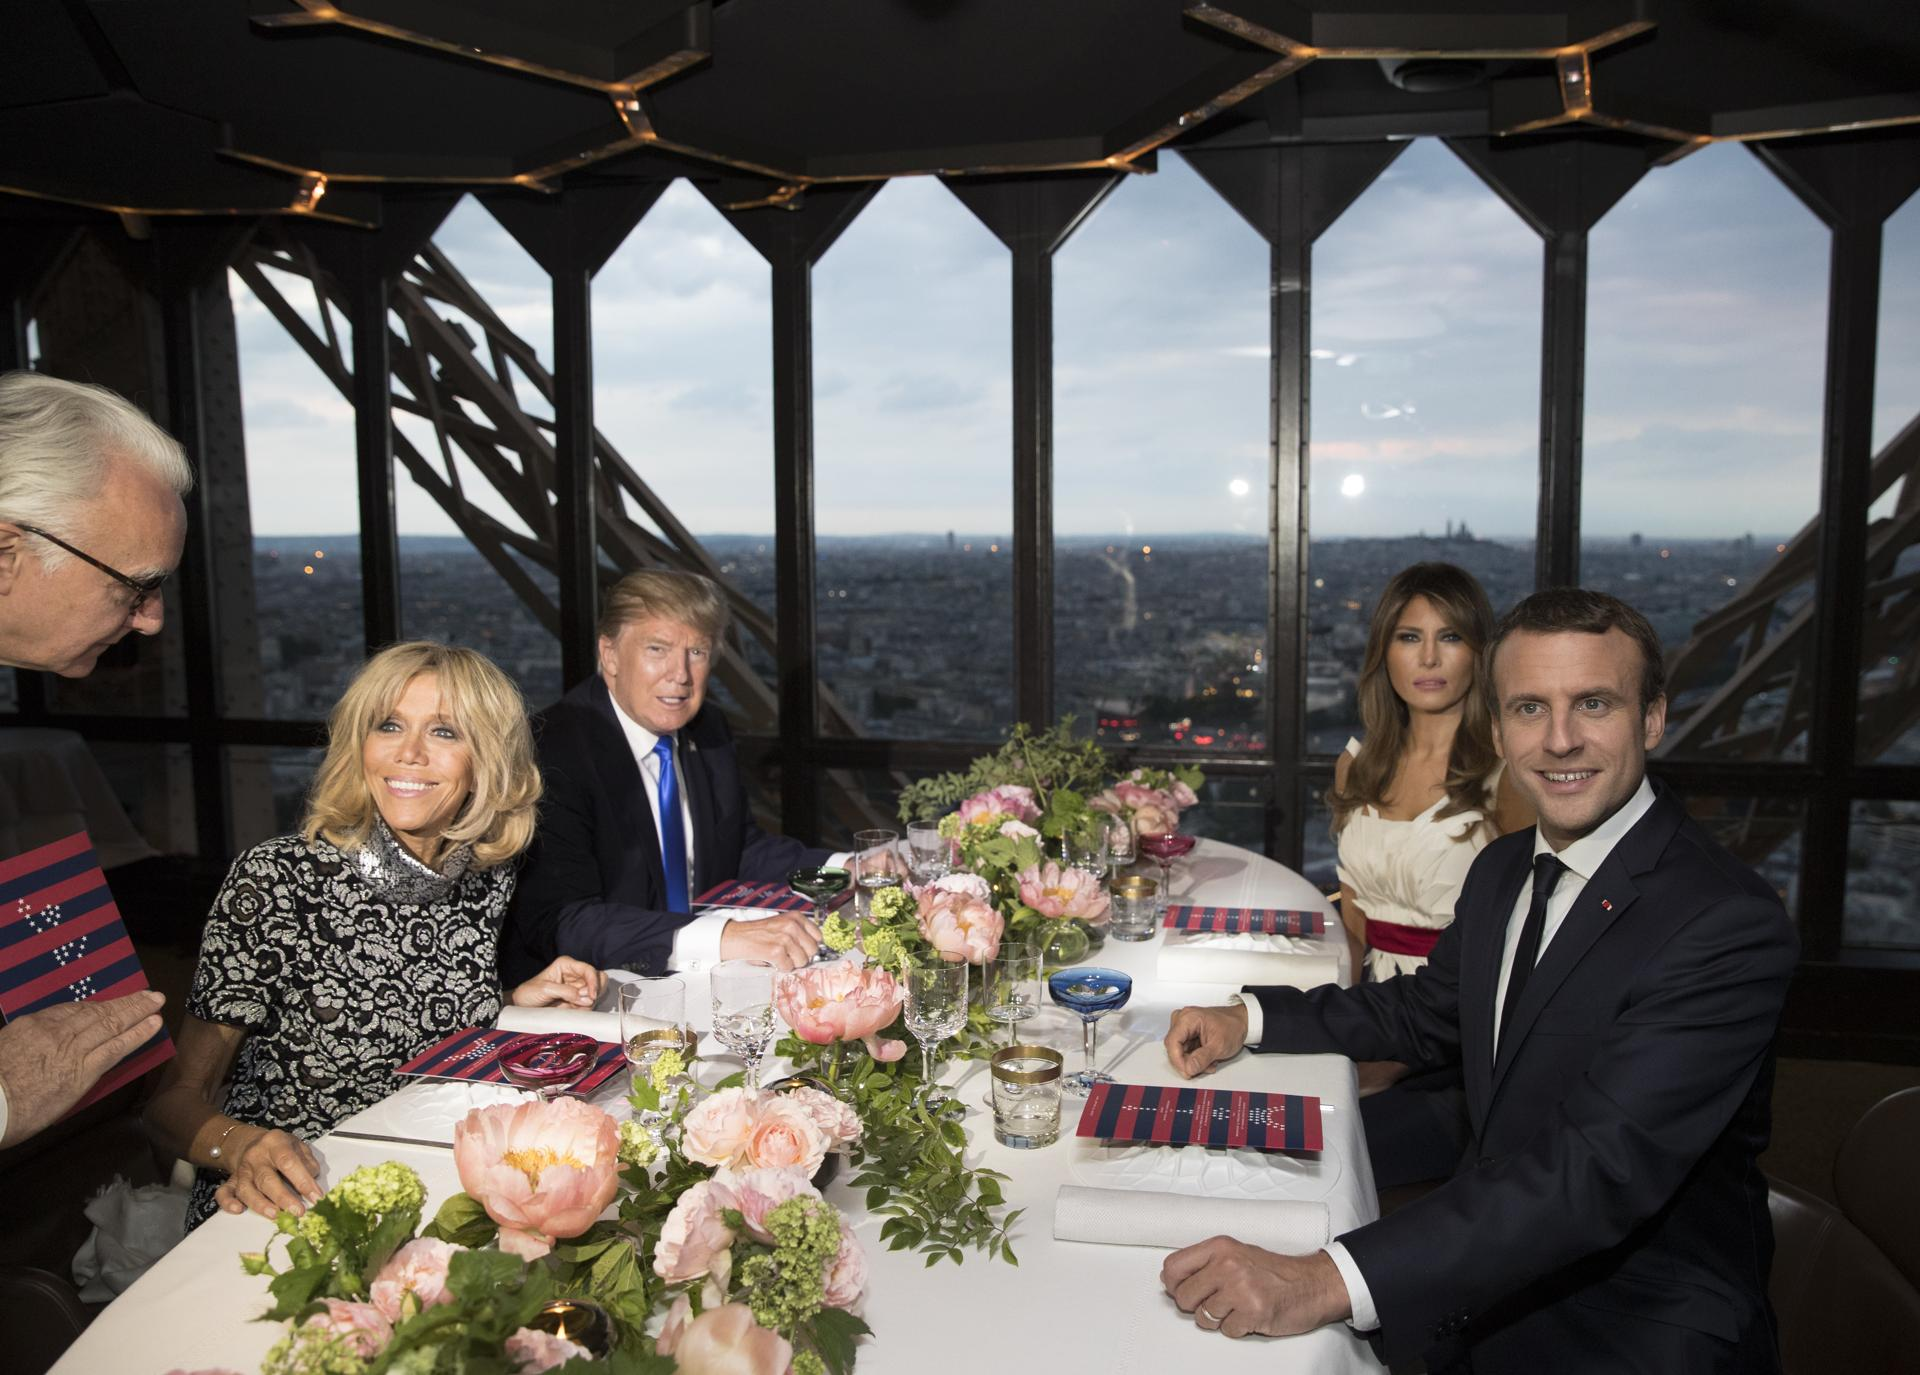 Here are photos from Trumps swanky Eiffel Tower dinner The